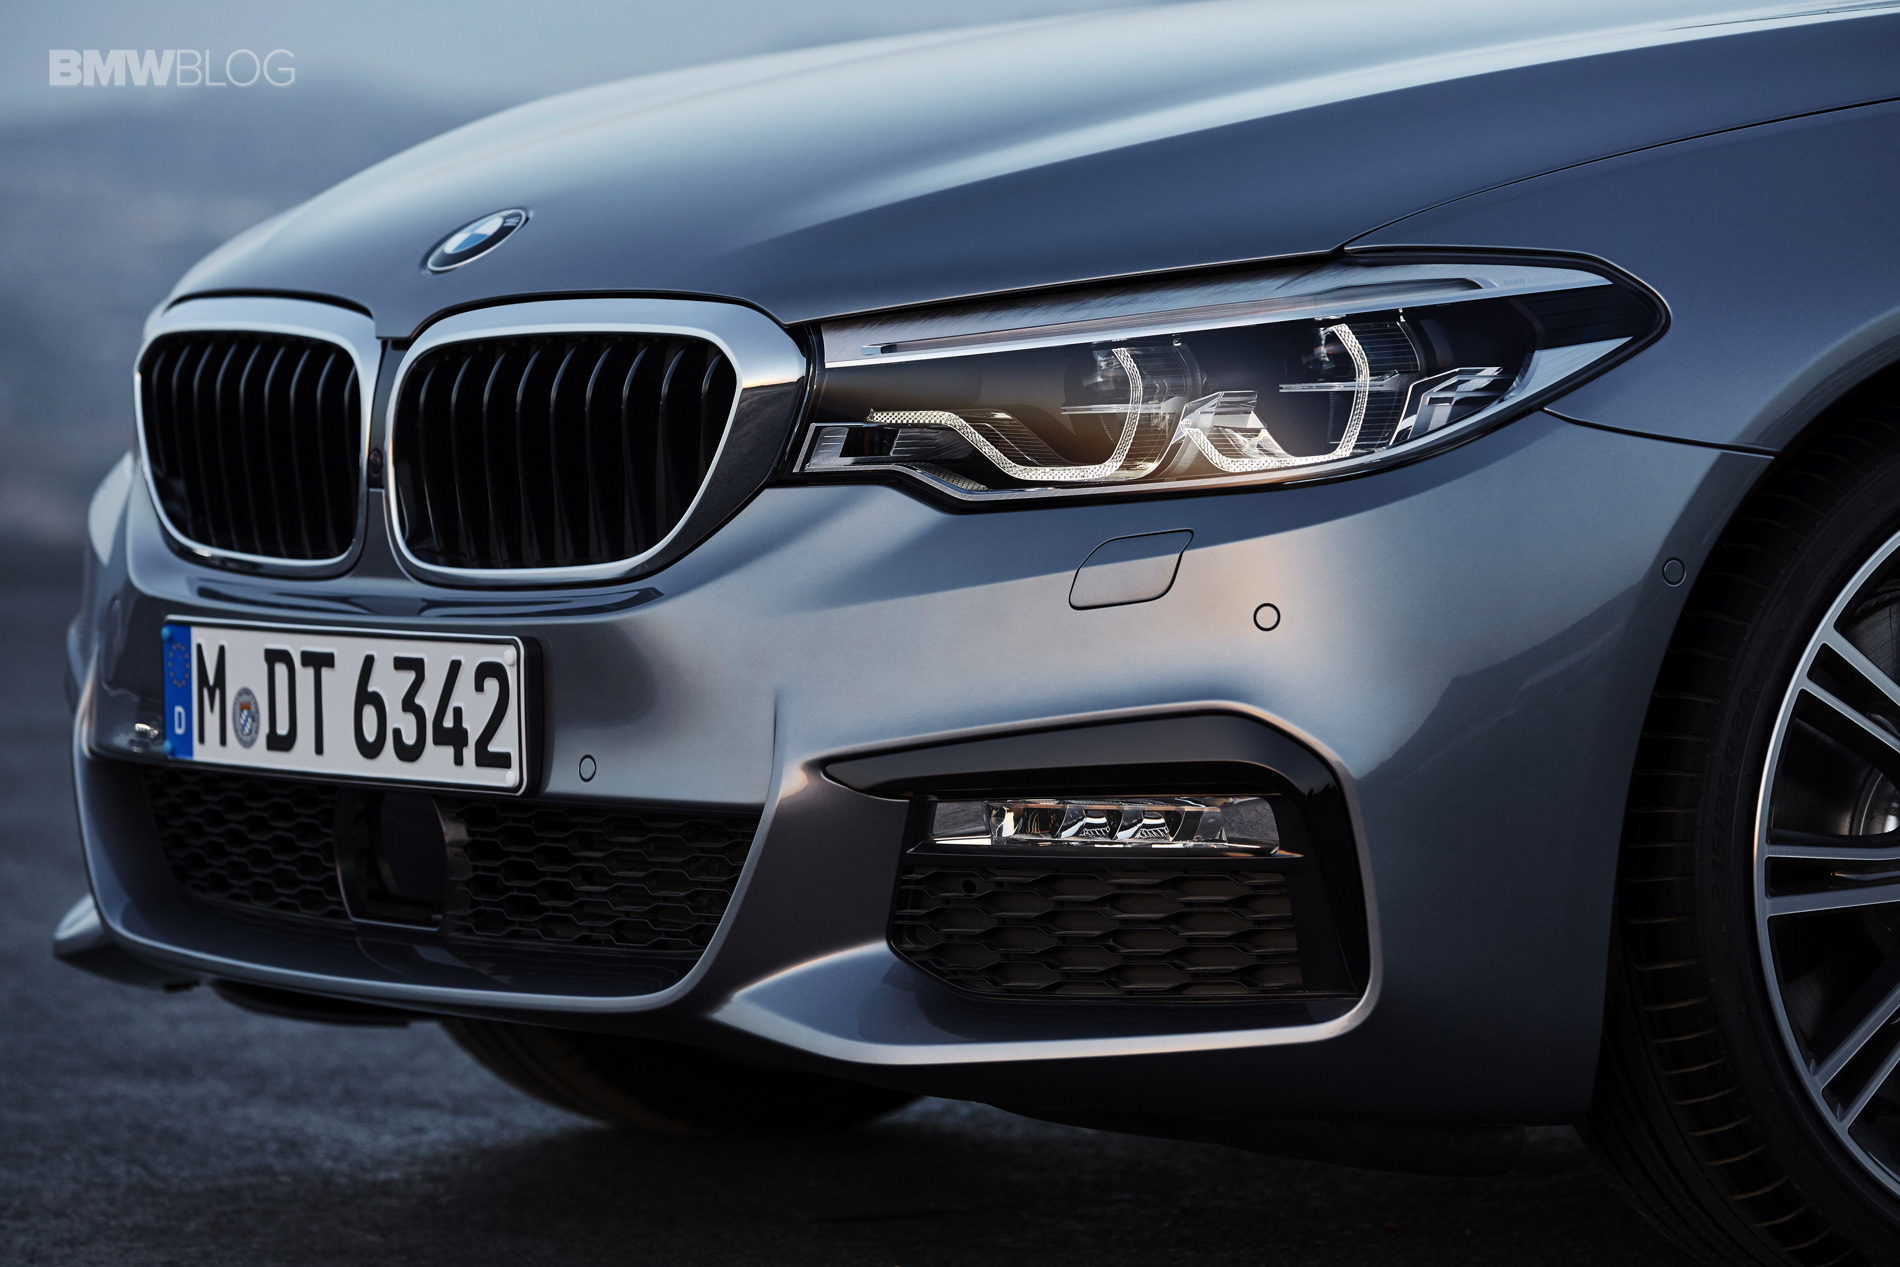 2017 Bmw 5 Series Will Have Adaptive Led Headlights As Standard In Us